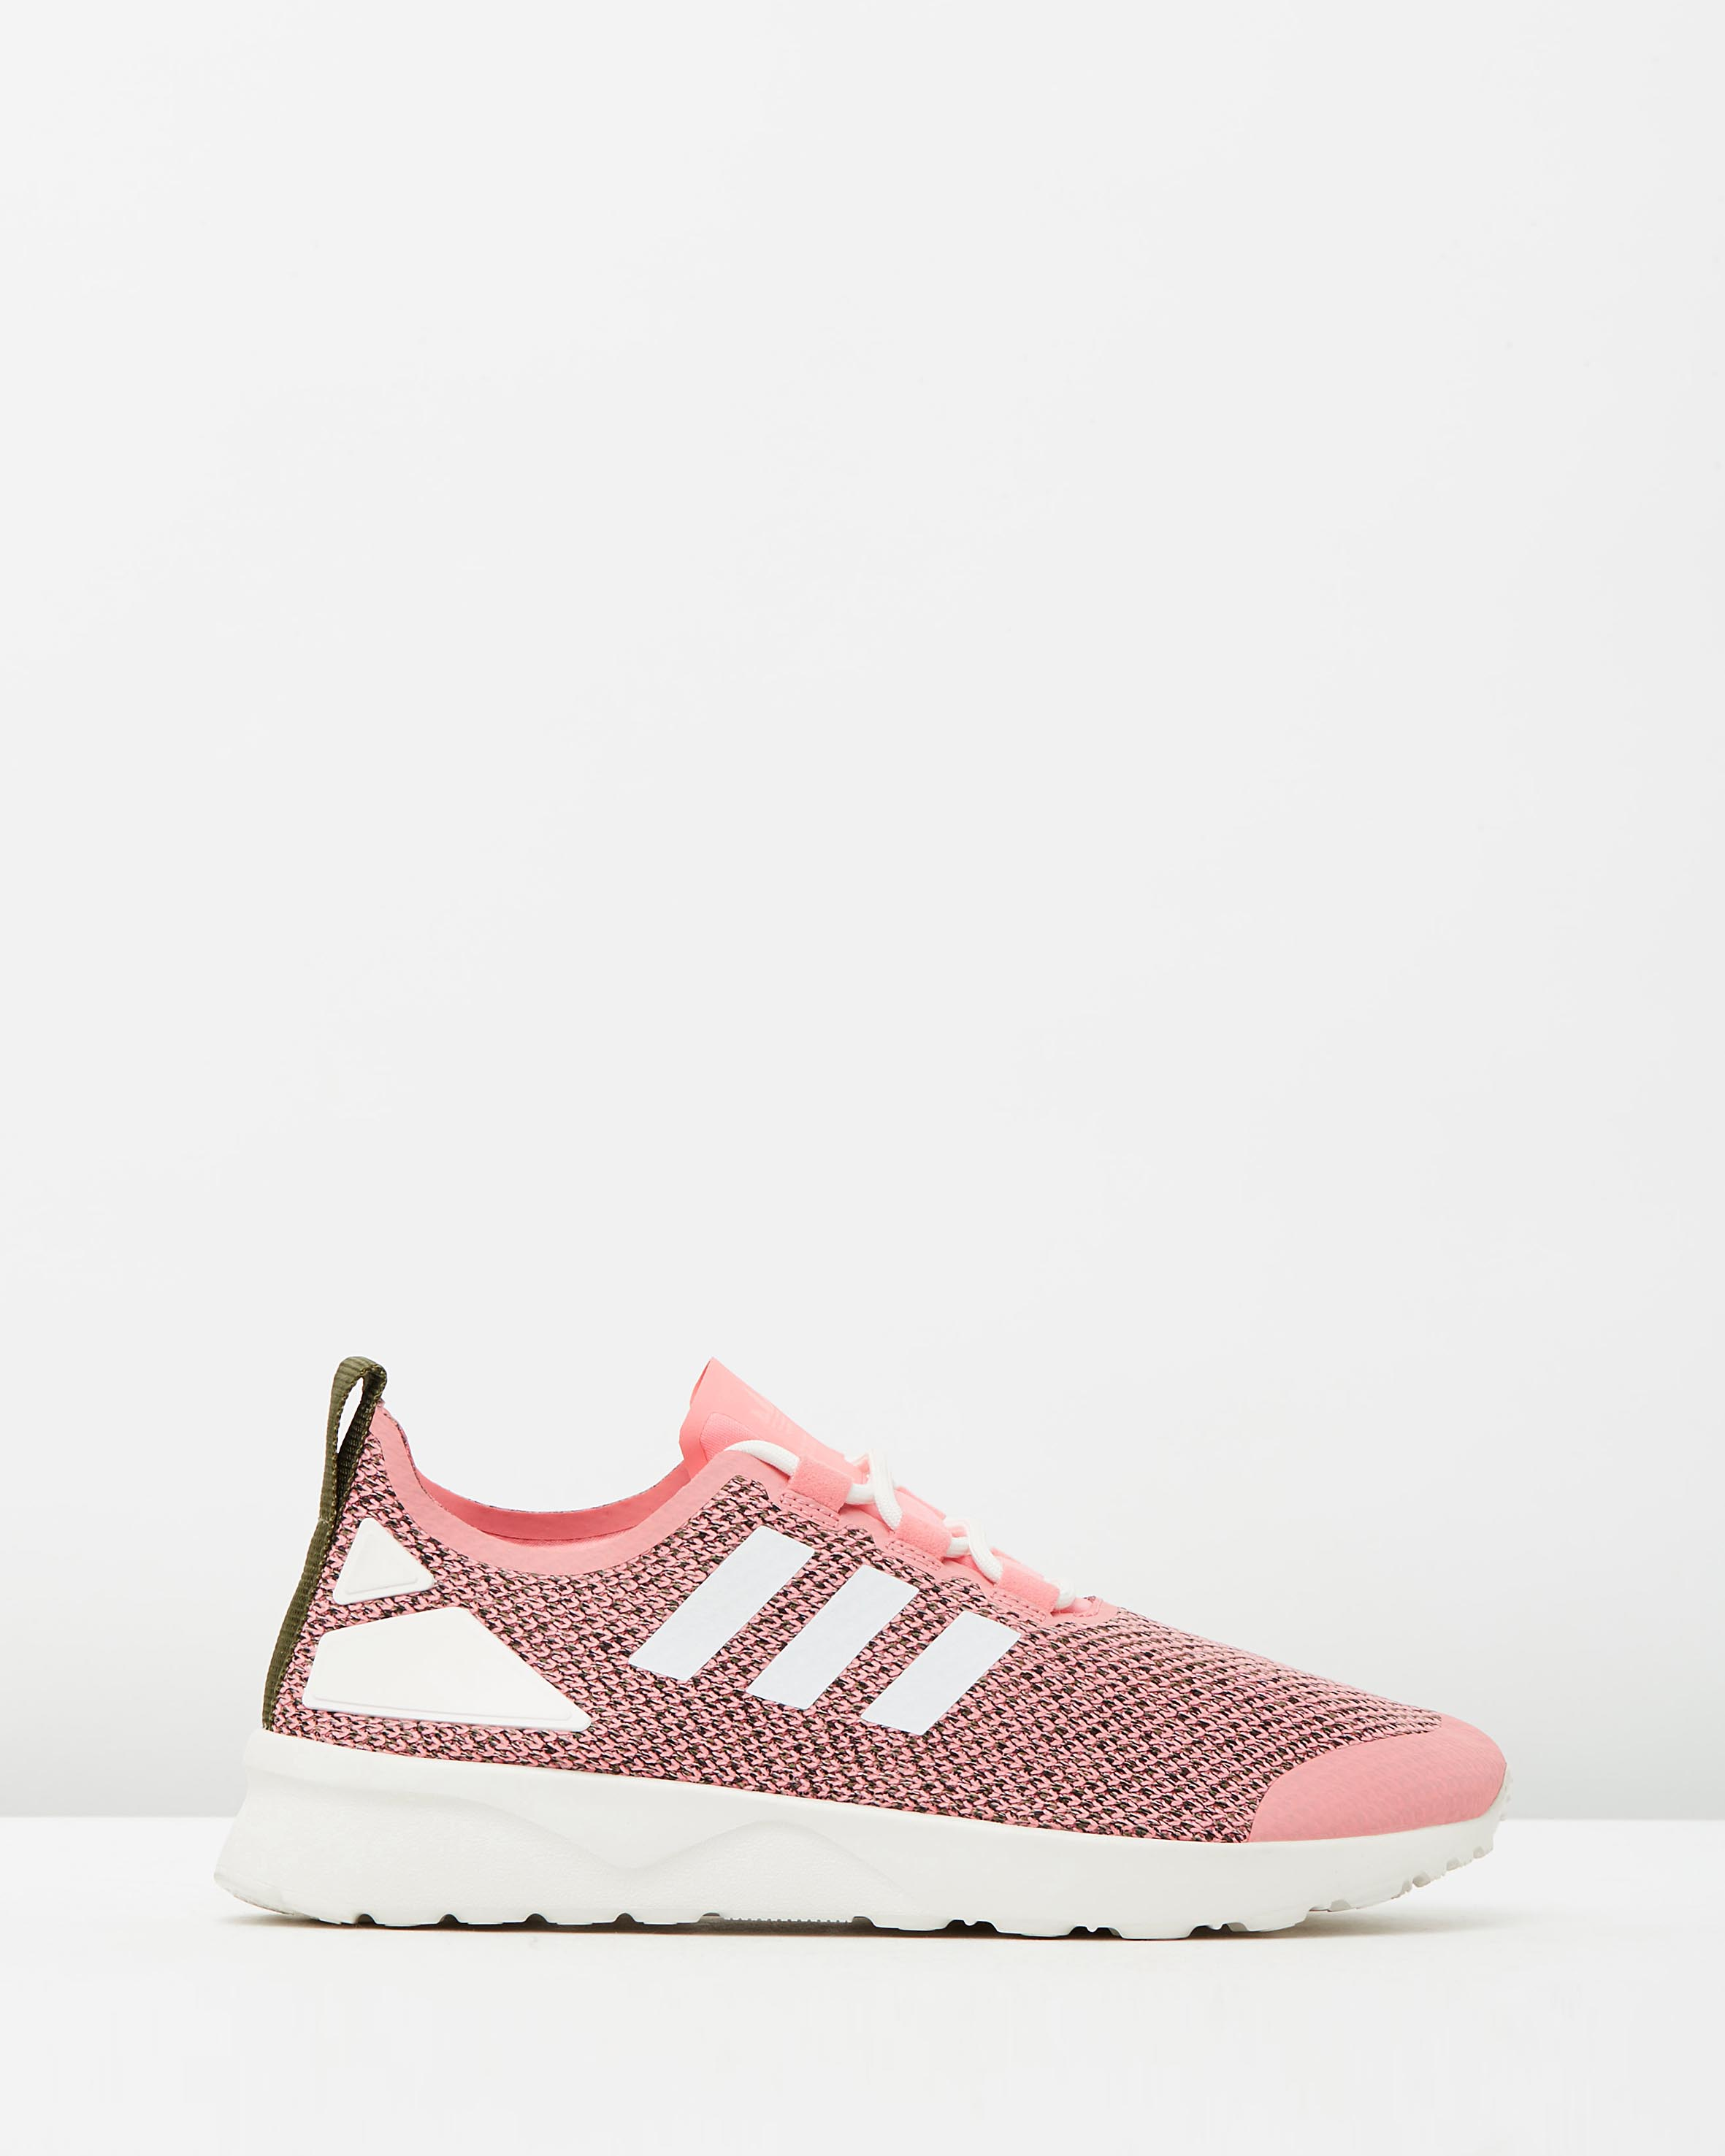 save off 4e88b c8326 Adidas Women's ZX Flux ADV Verve W Pink